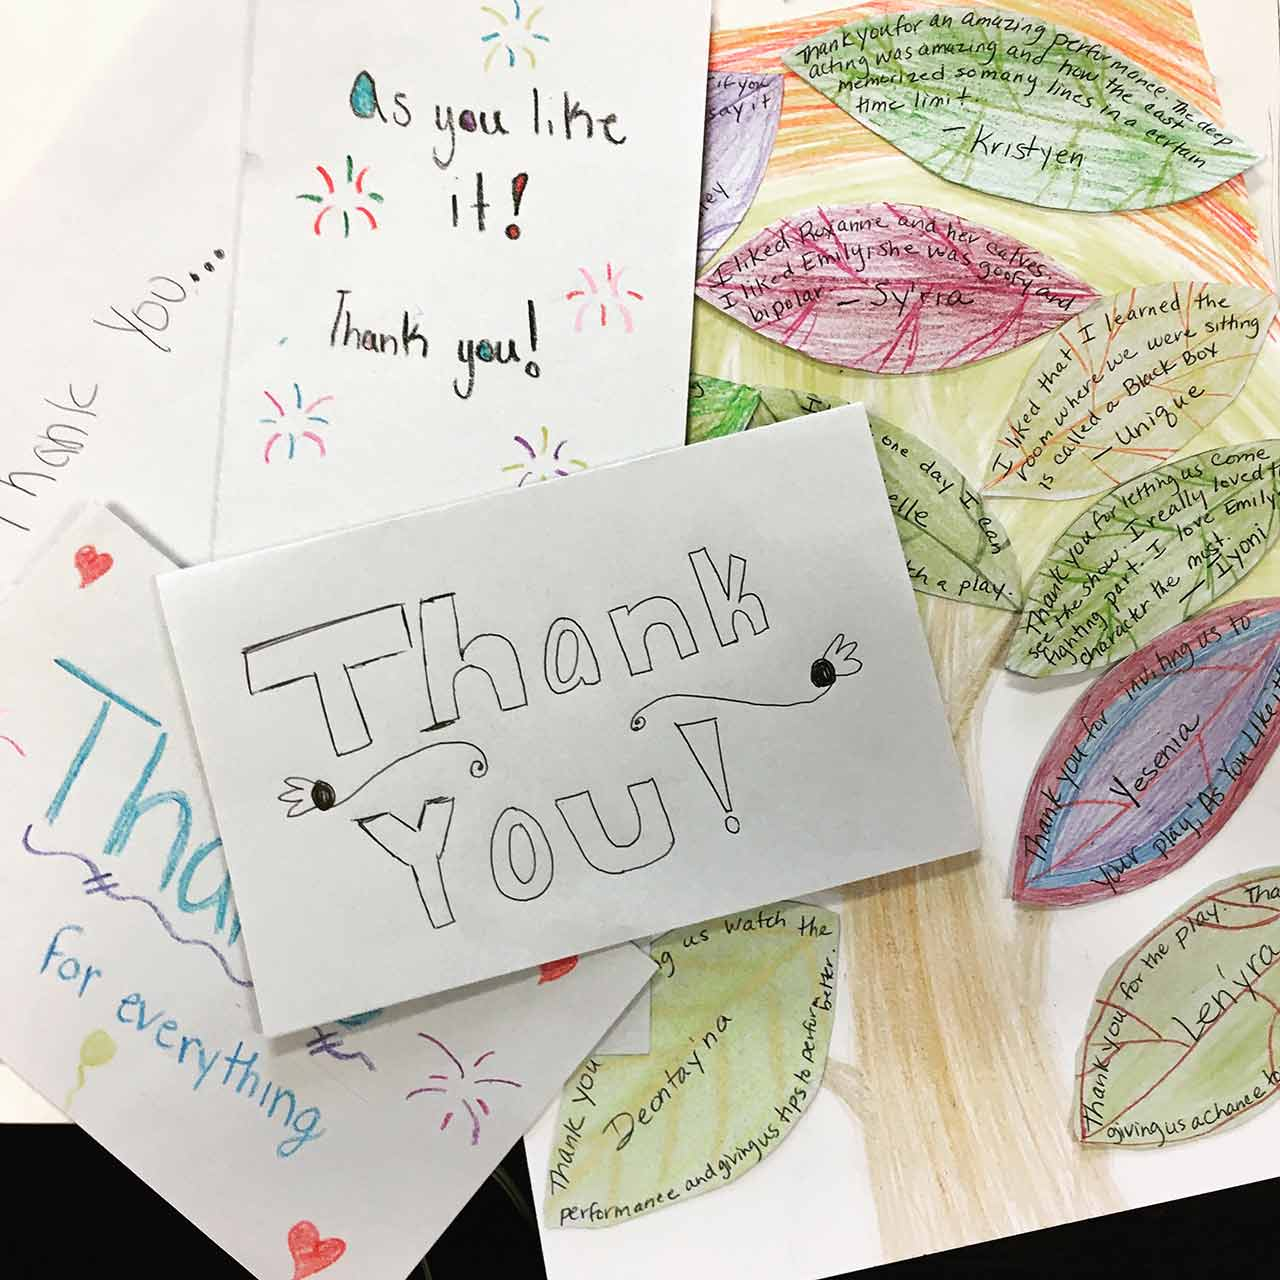 A collection of thank-you notes from students who attended As You Like It.